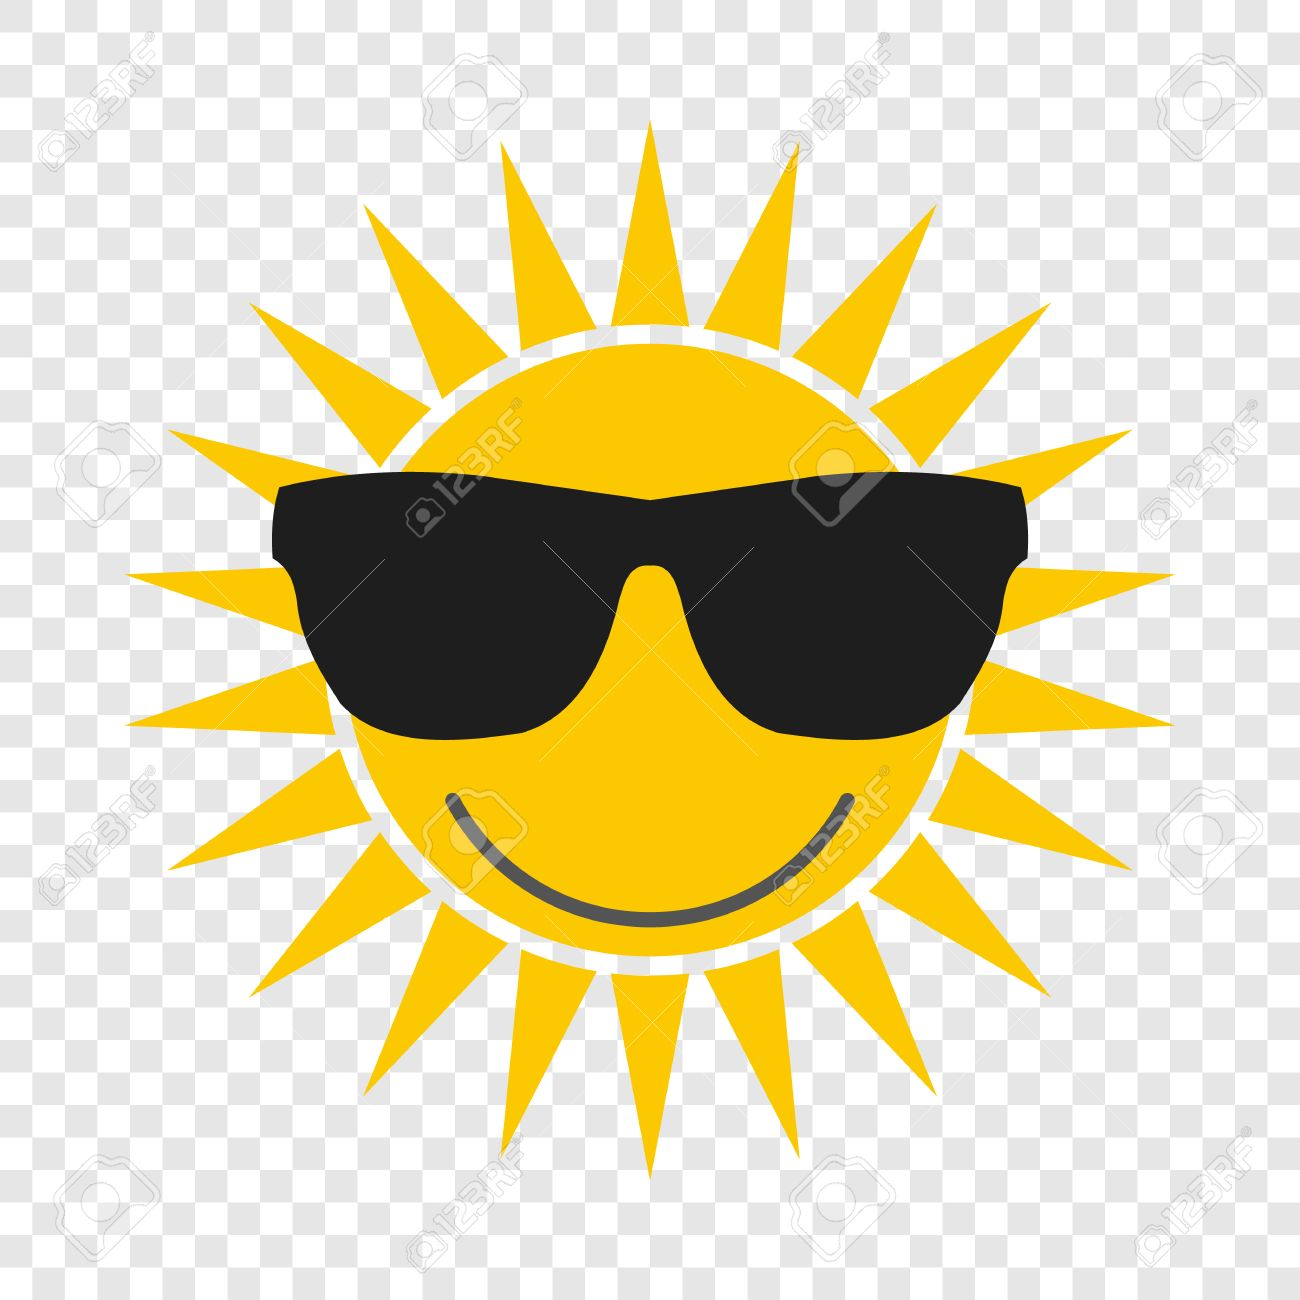 sun with glasses flat icon on transparent background royalty free